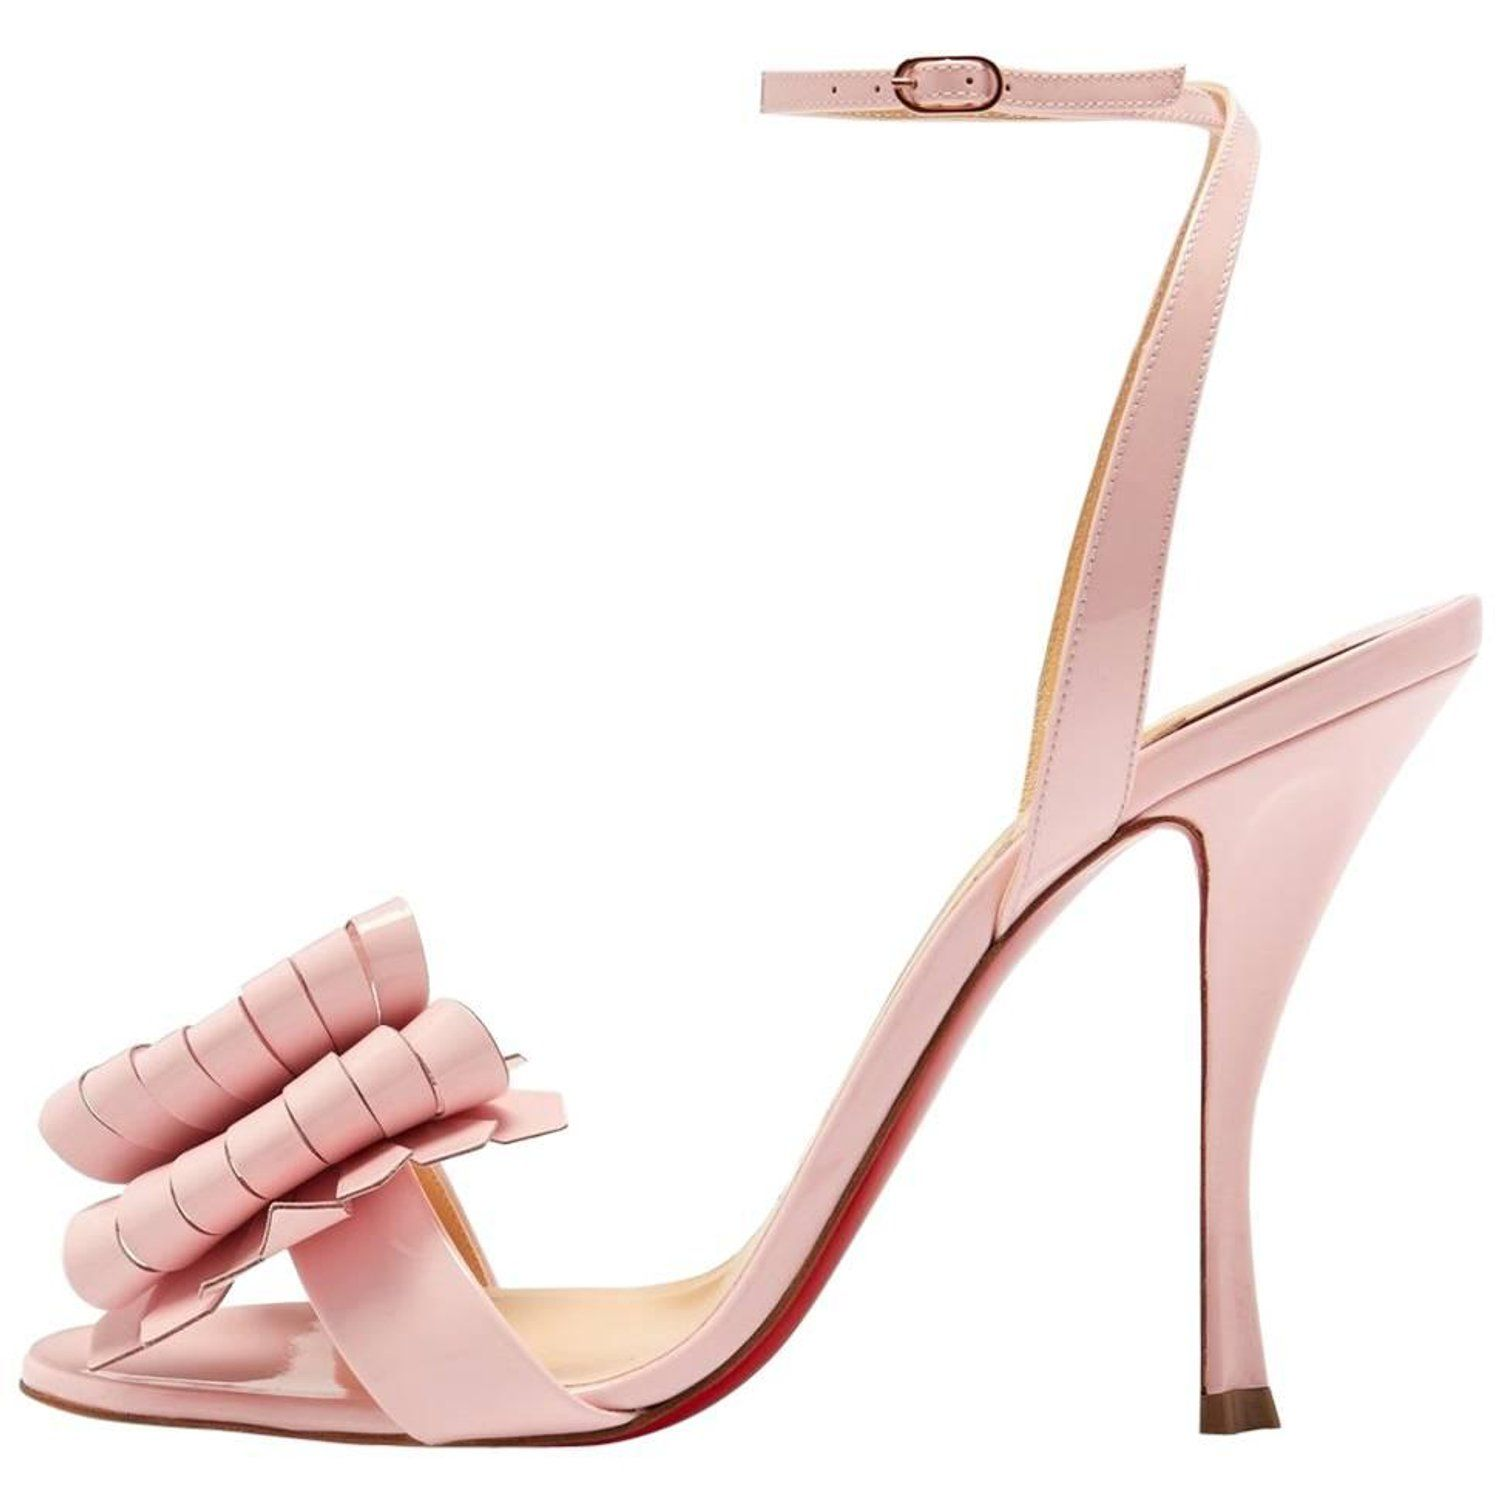 0e23f94016b Christian Louboutin New Pink Patent Bow Evening Sandals Heels | 16th ...